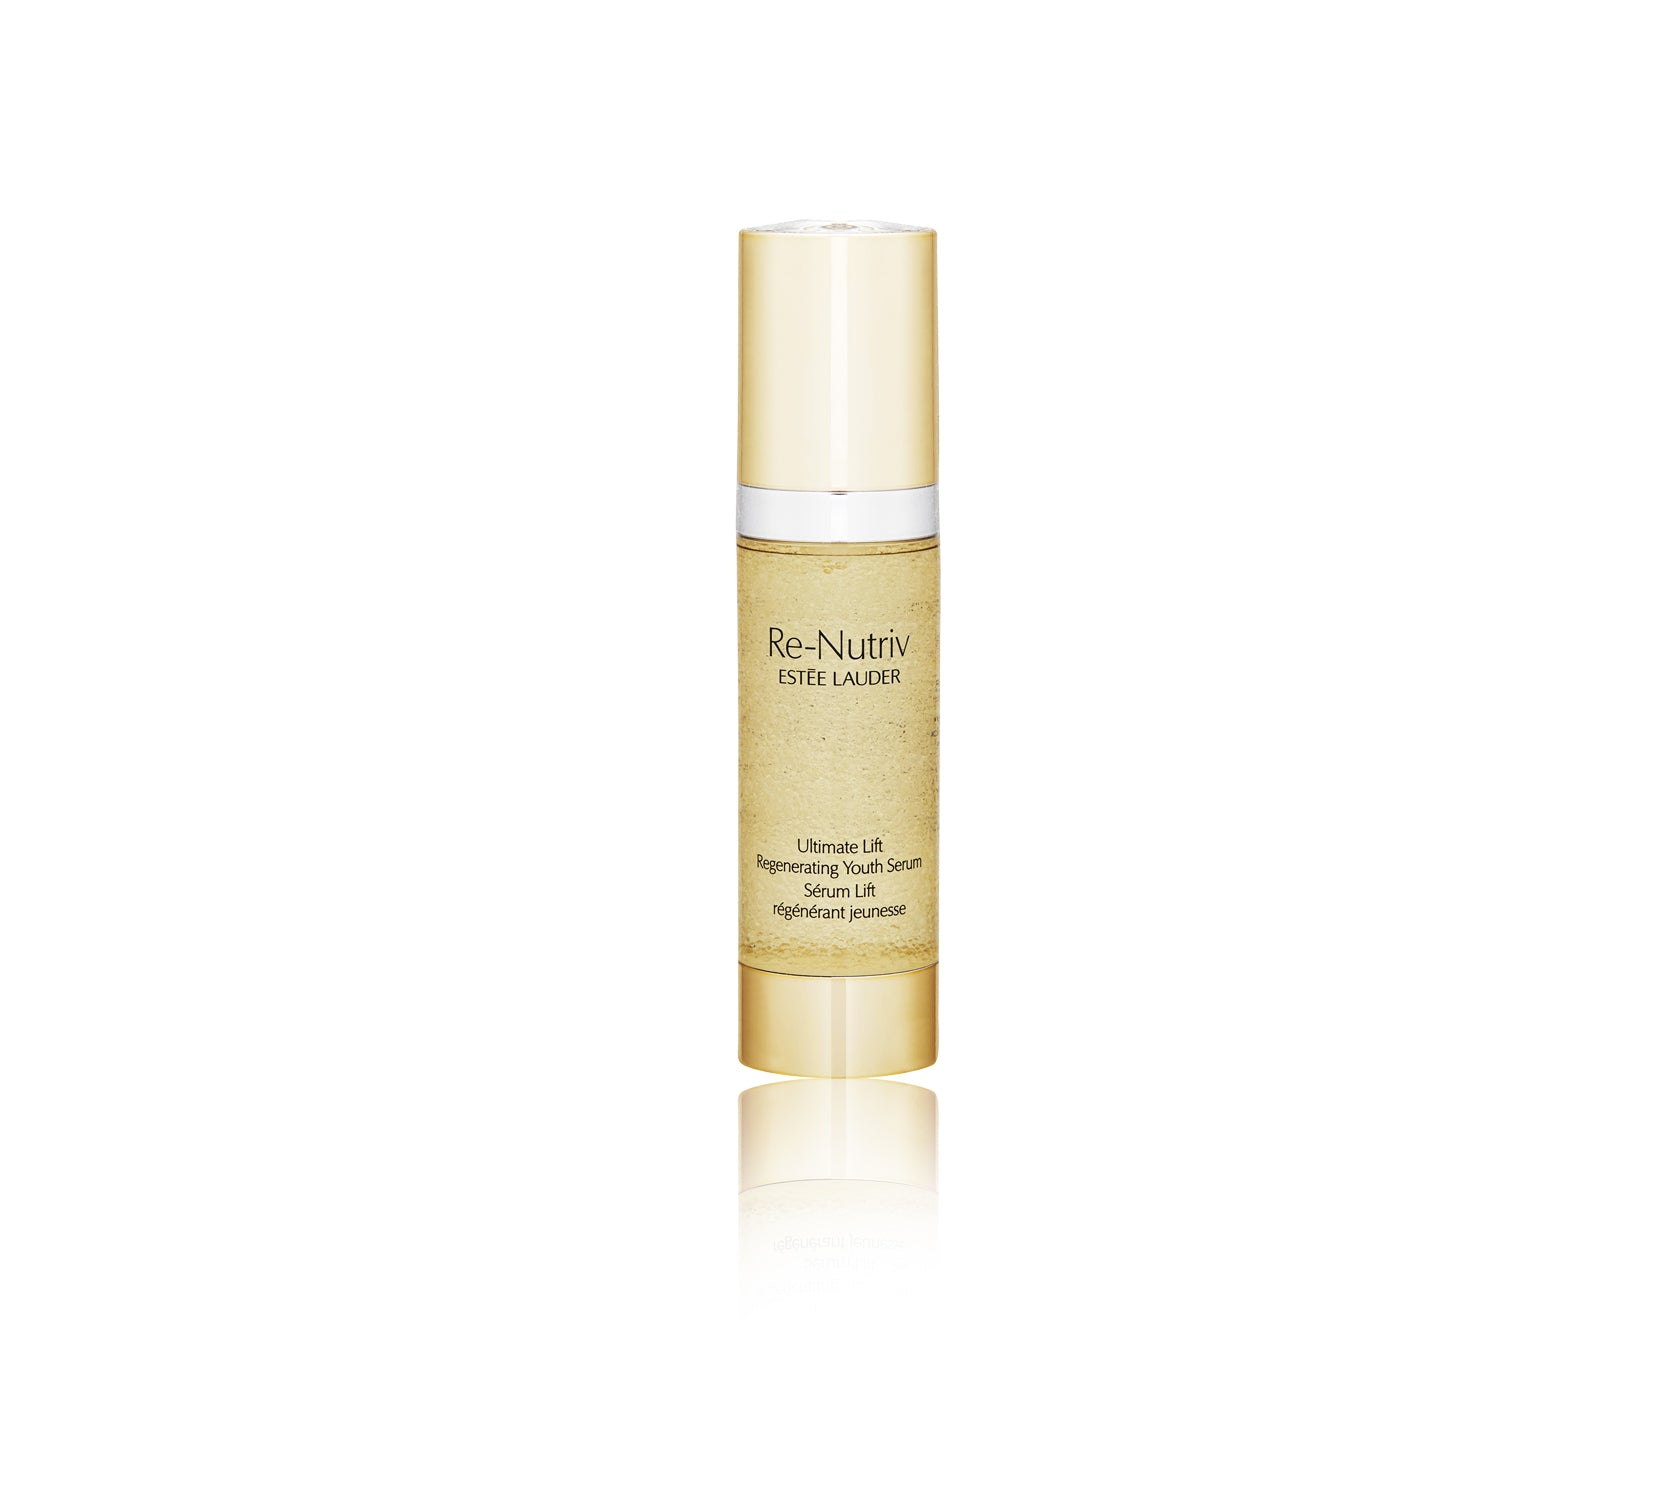 re-nutriv-ultimate-lift-regenerating-youth-serum